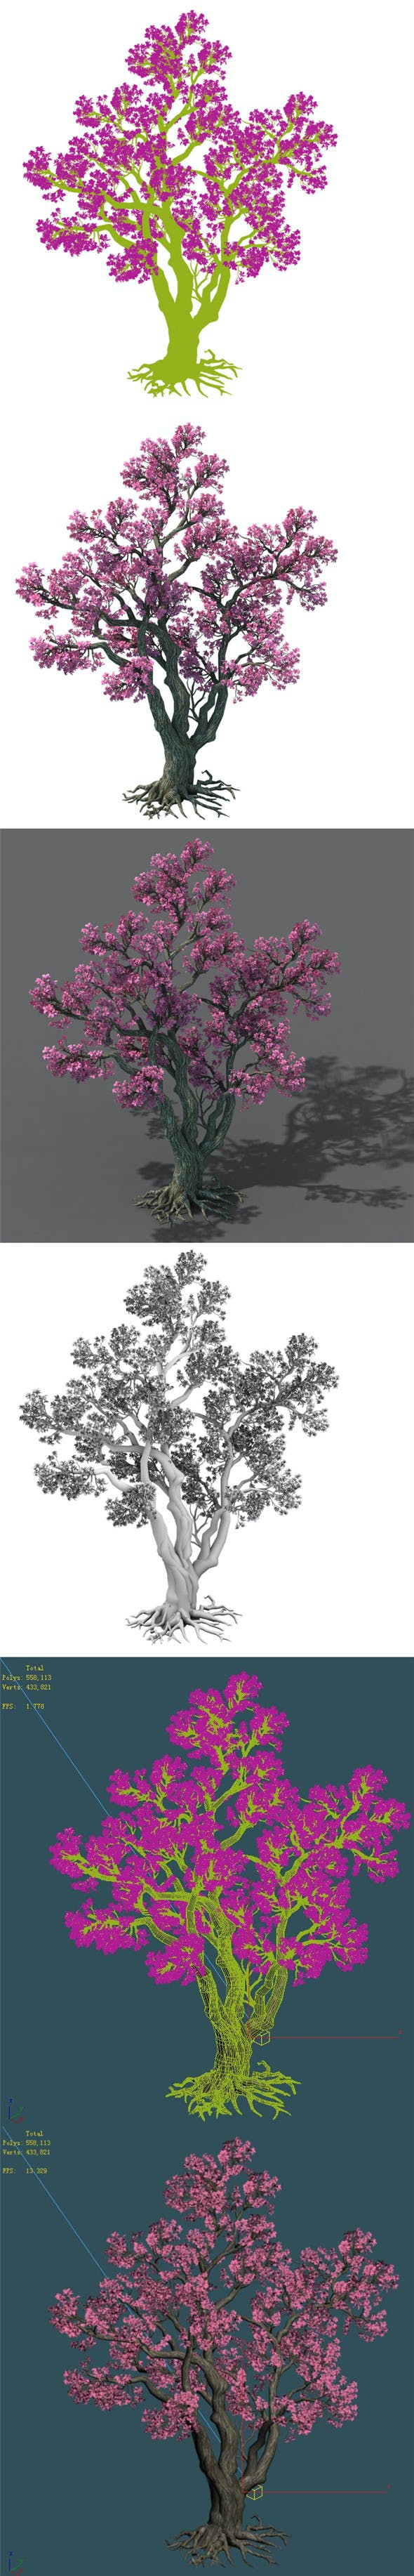 Forest - Peach Tree 03 - 3DOcean Item for Sale